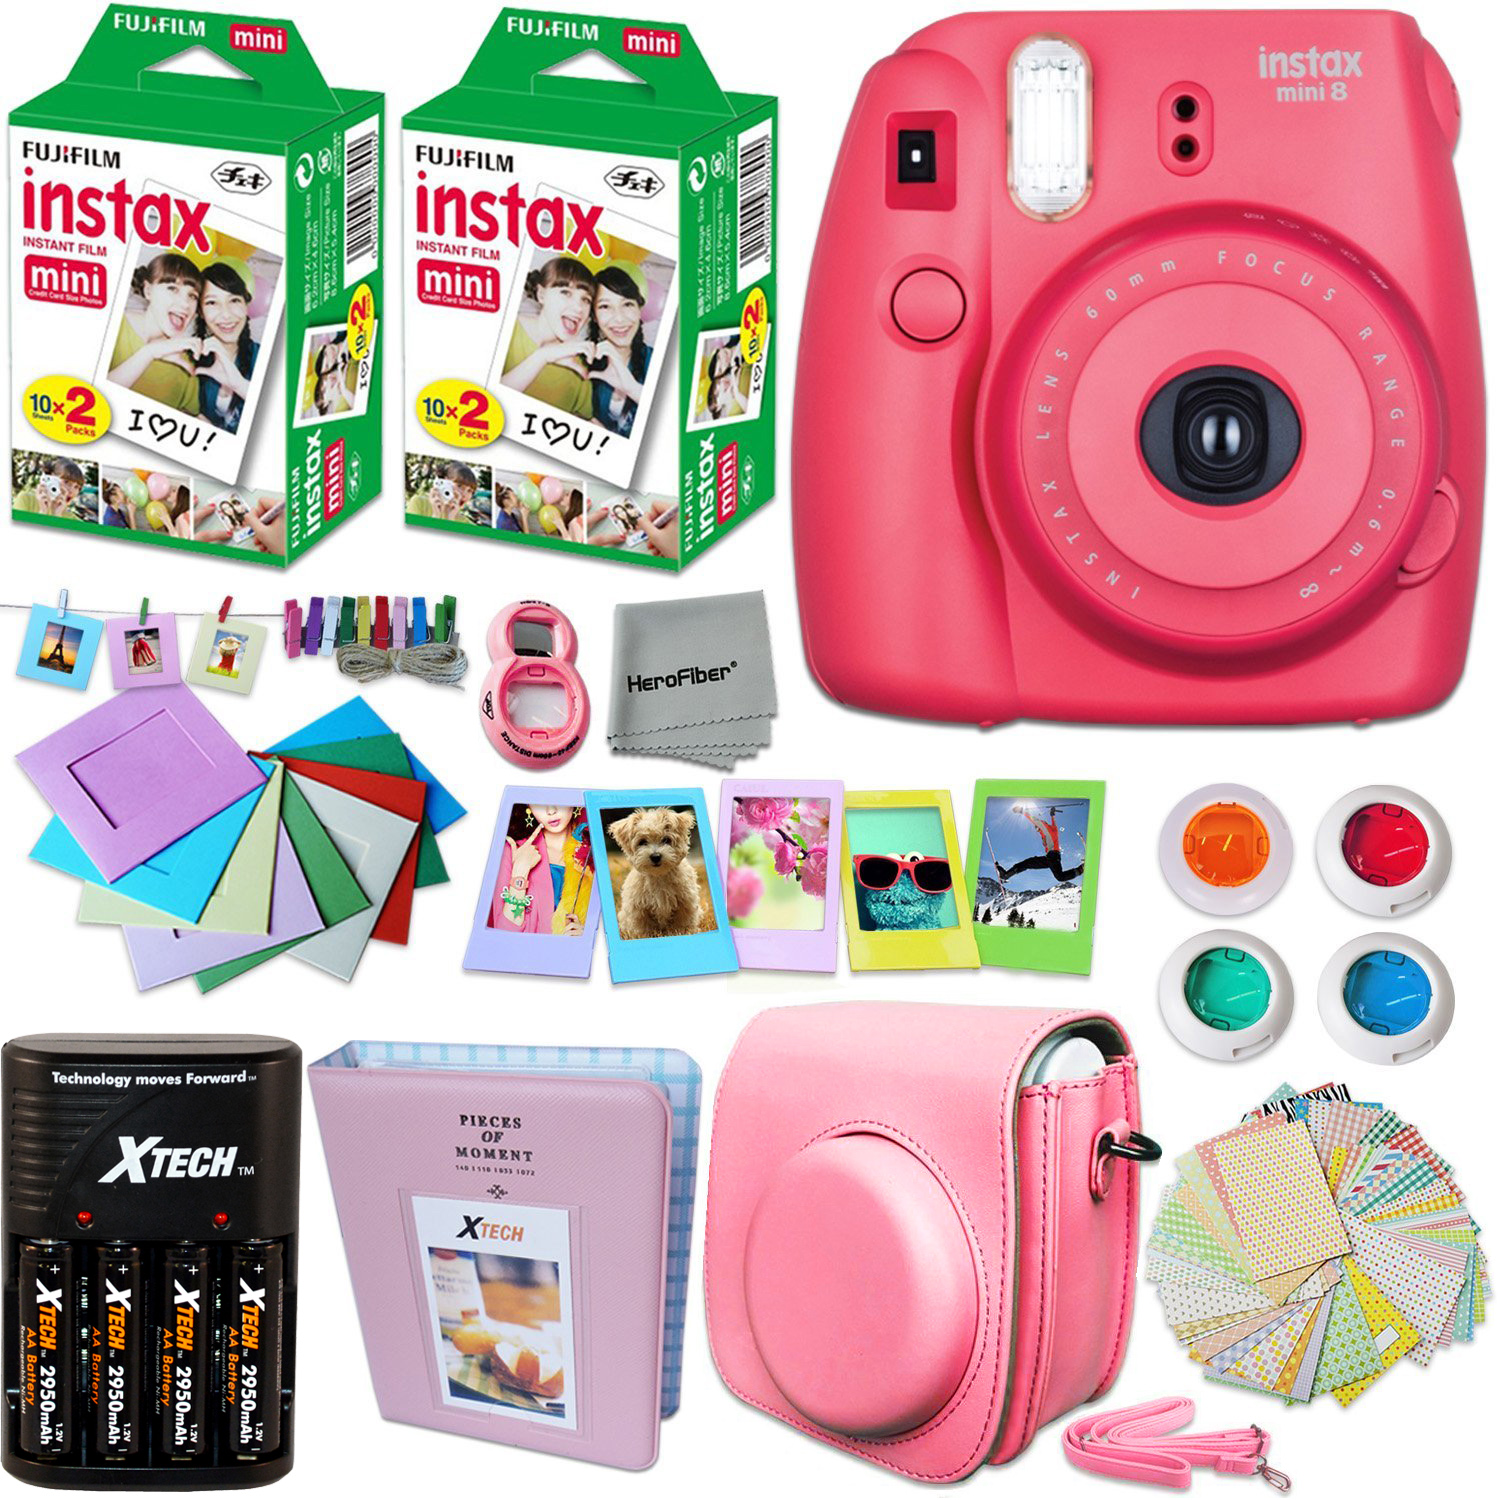 FujiFilm Instax Mini 8 Camera RASPBERRY + Accessories KIT for Fujifilm Instax Mini 8 Camera includes: 40 Instax Film + Custom Case + 4 AA Rechargeable Batteries + Assorted Frames + Photo Album + MORE